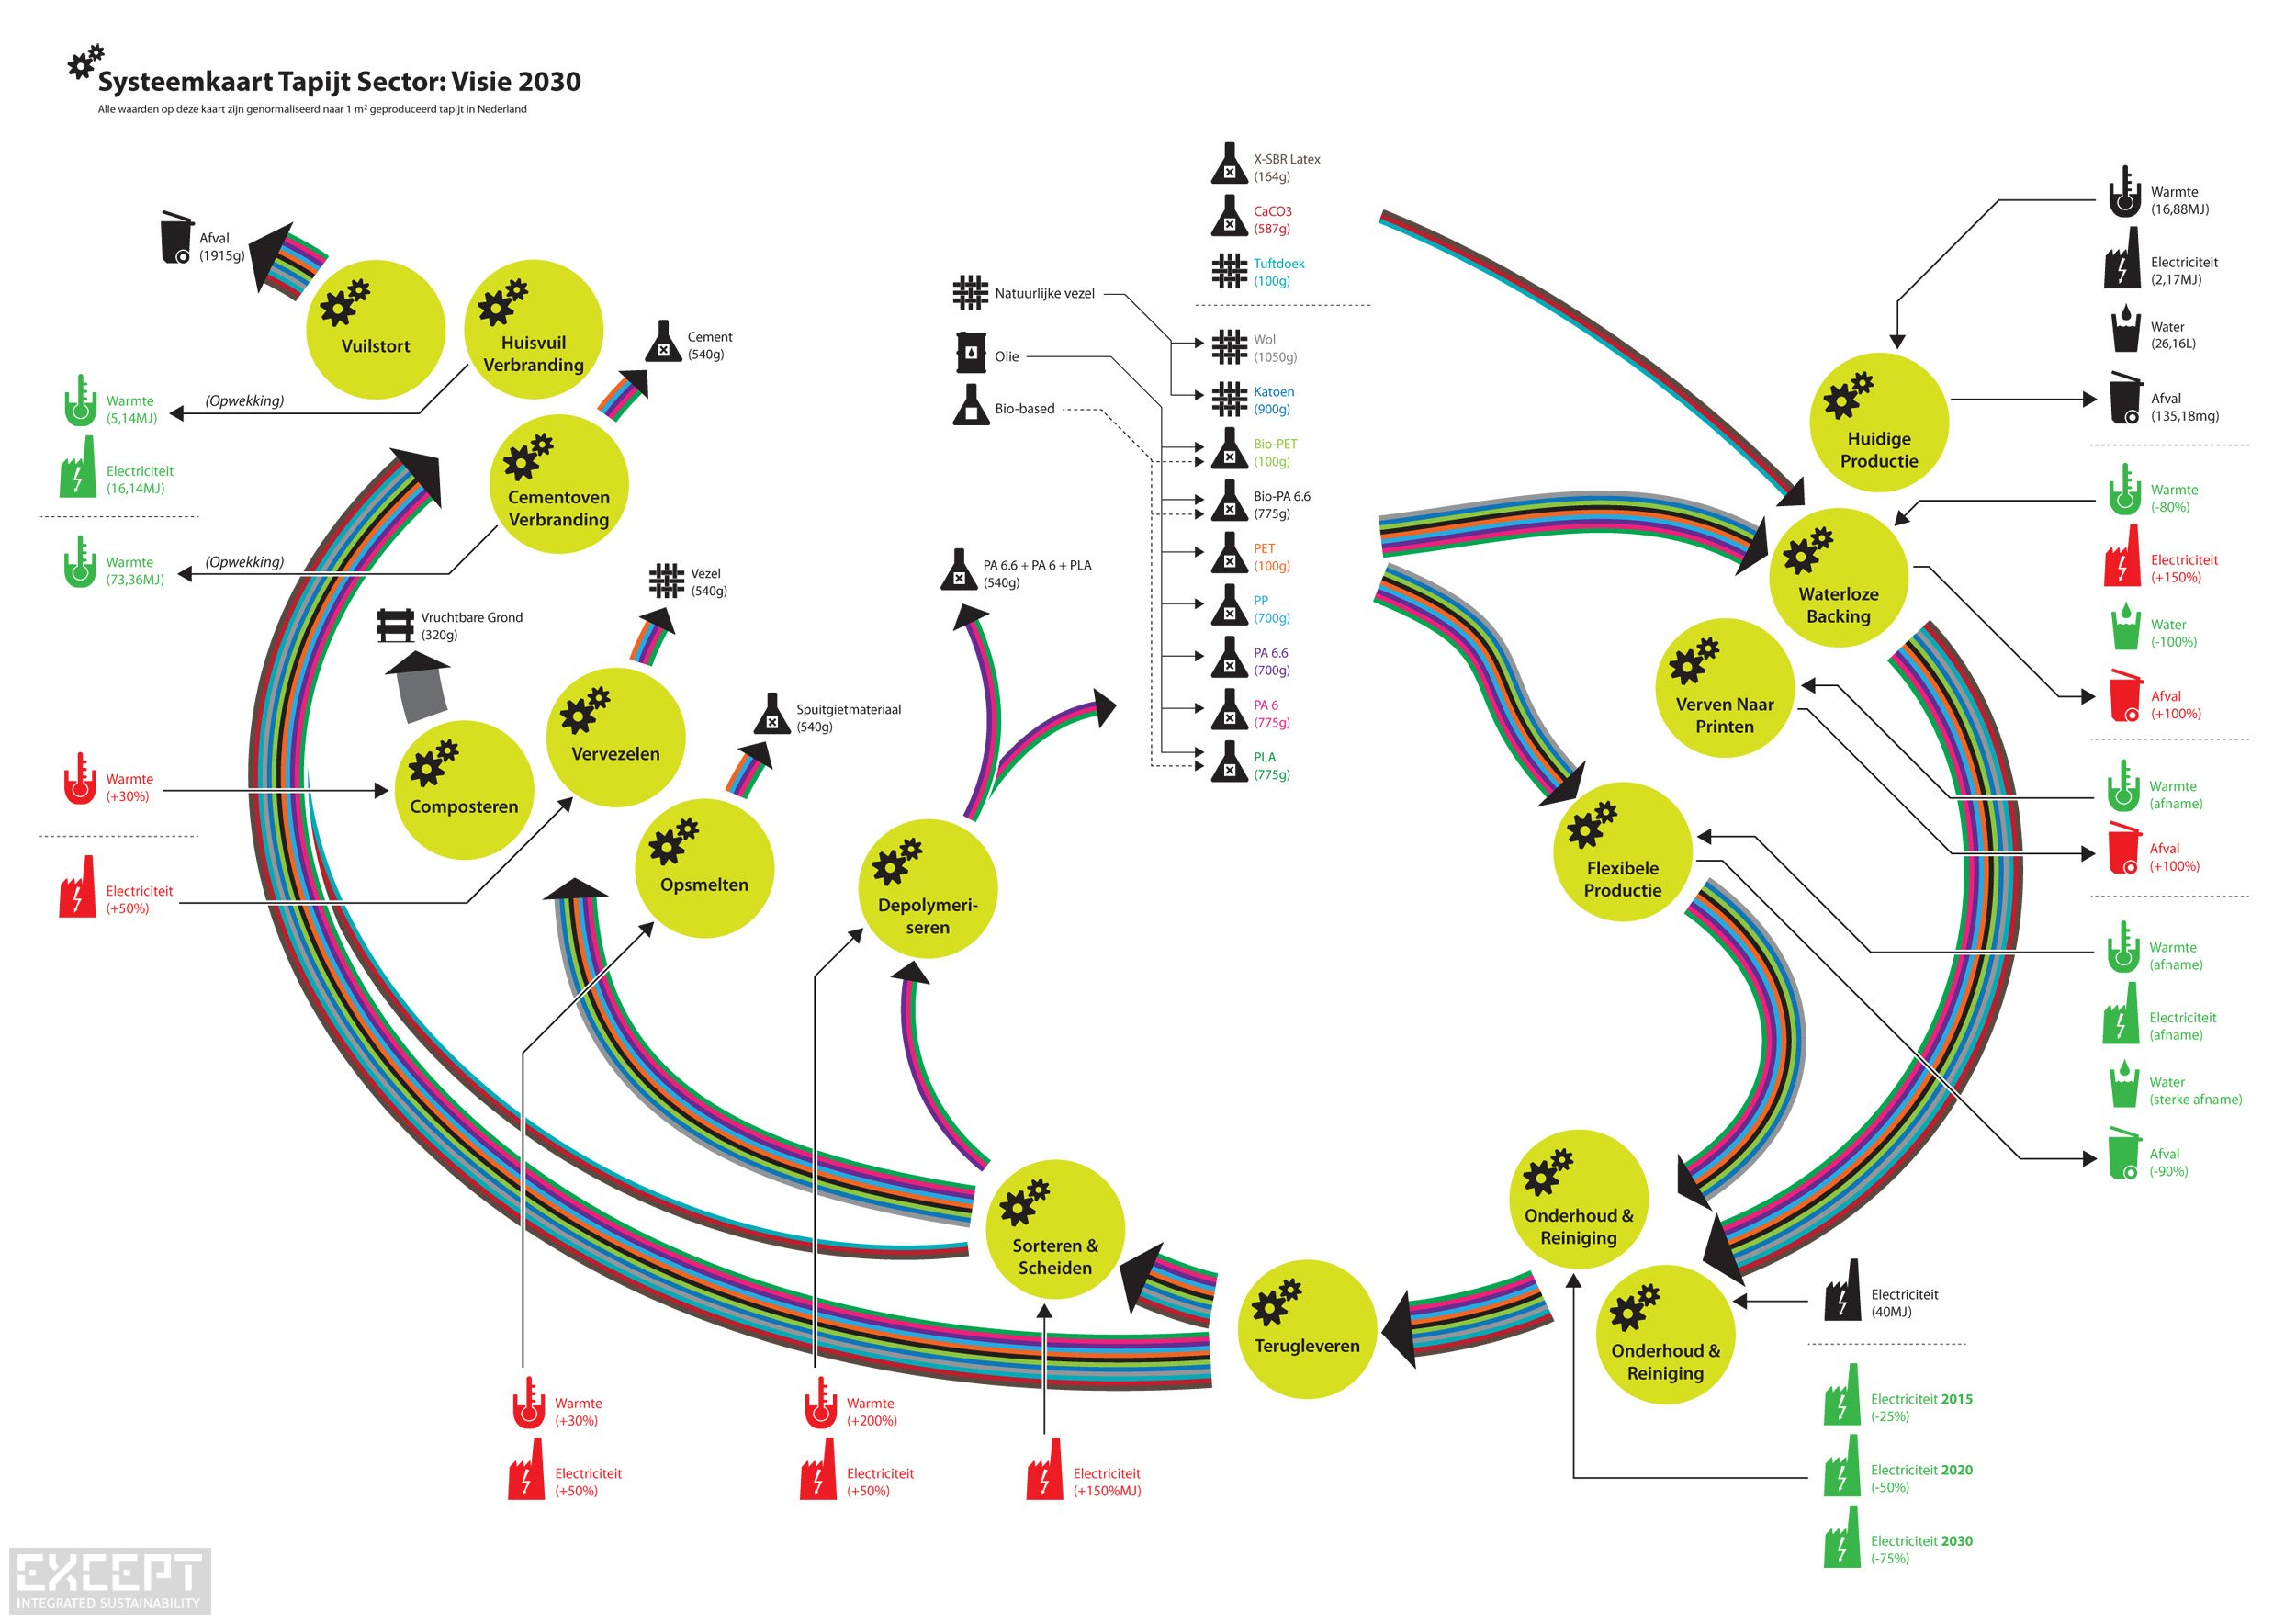 System map whole industry chain - System map of future envisioning of the Dutch carpet sector